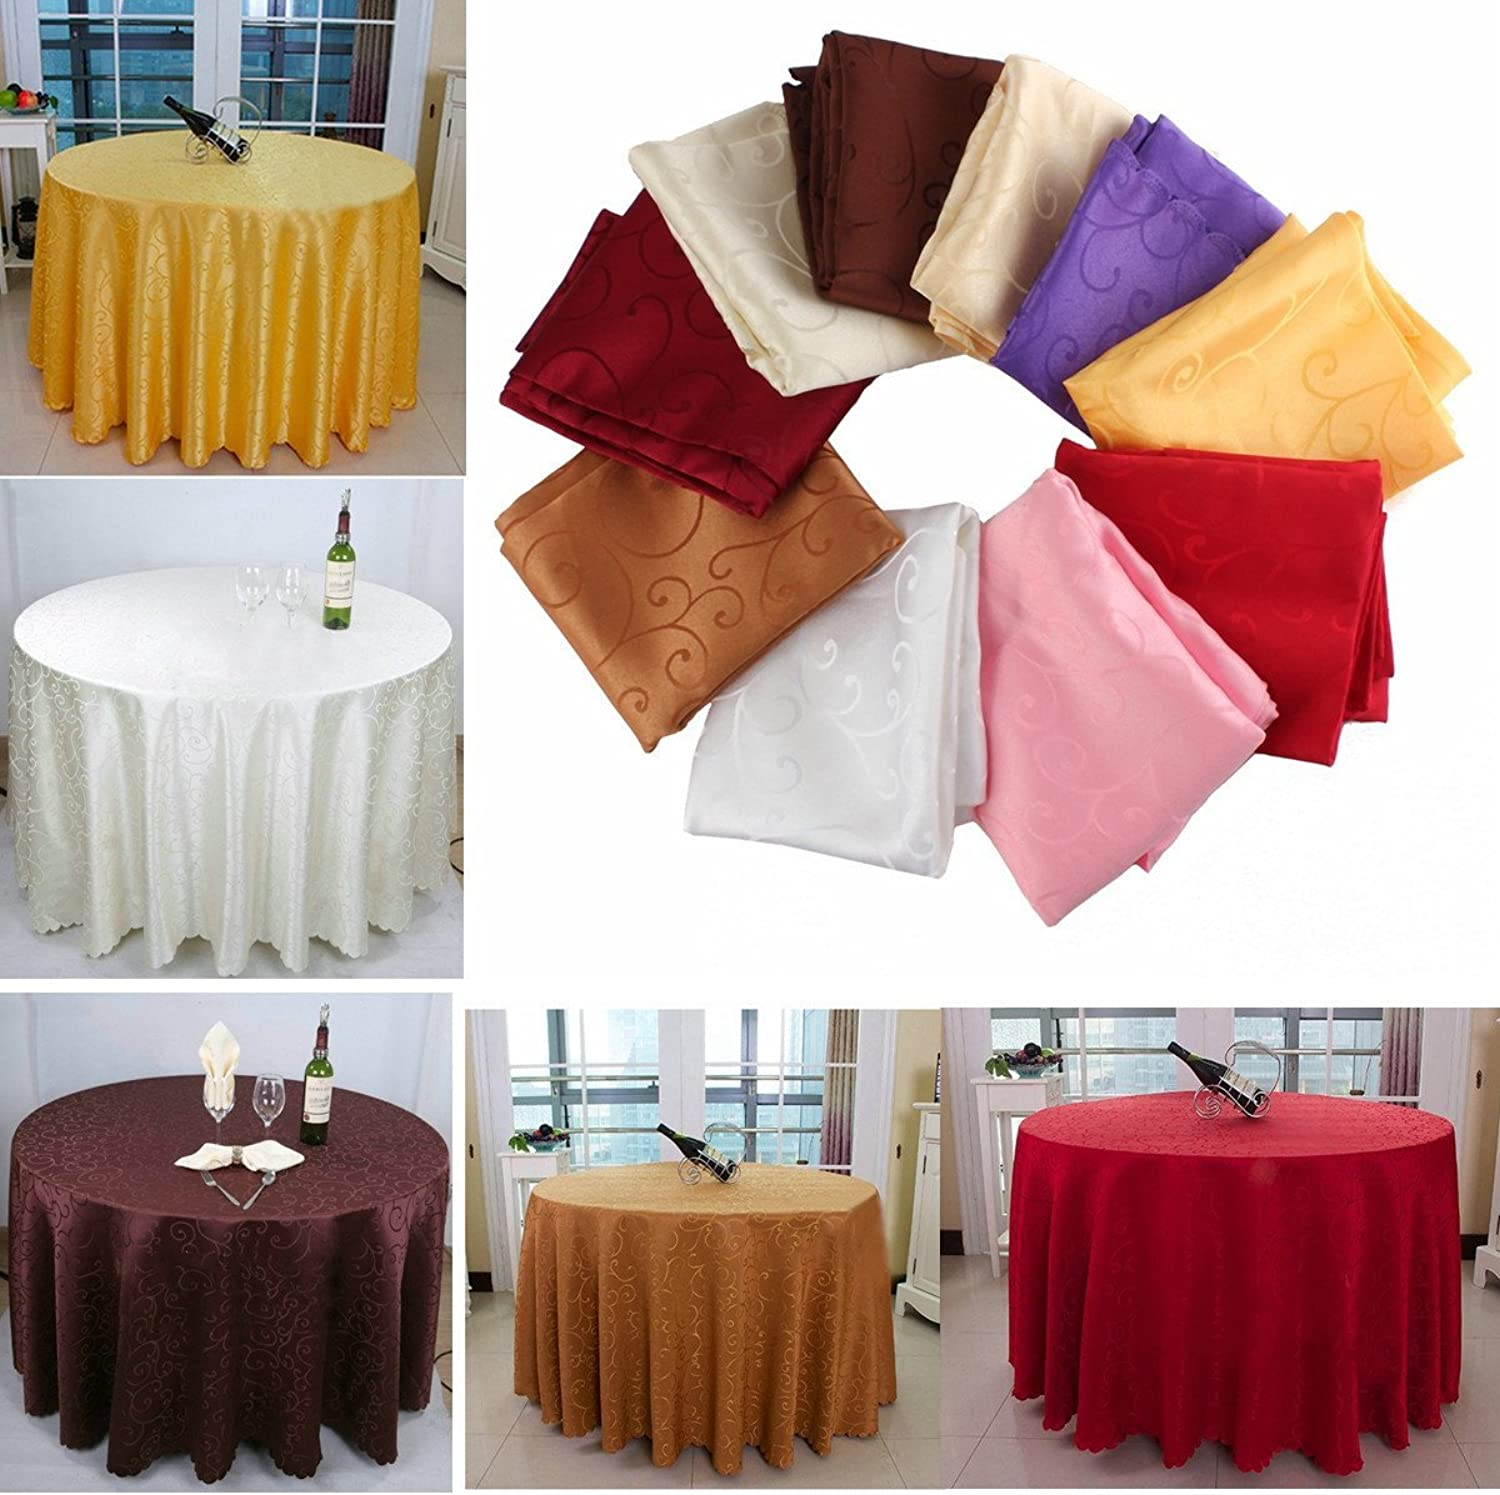 Generic 200cm Polyester Absorbent Round Tablecloth for Hotel Restaurant Wedding Decor